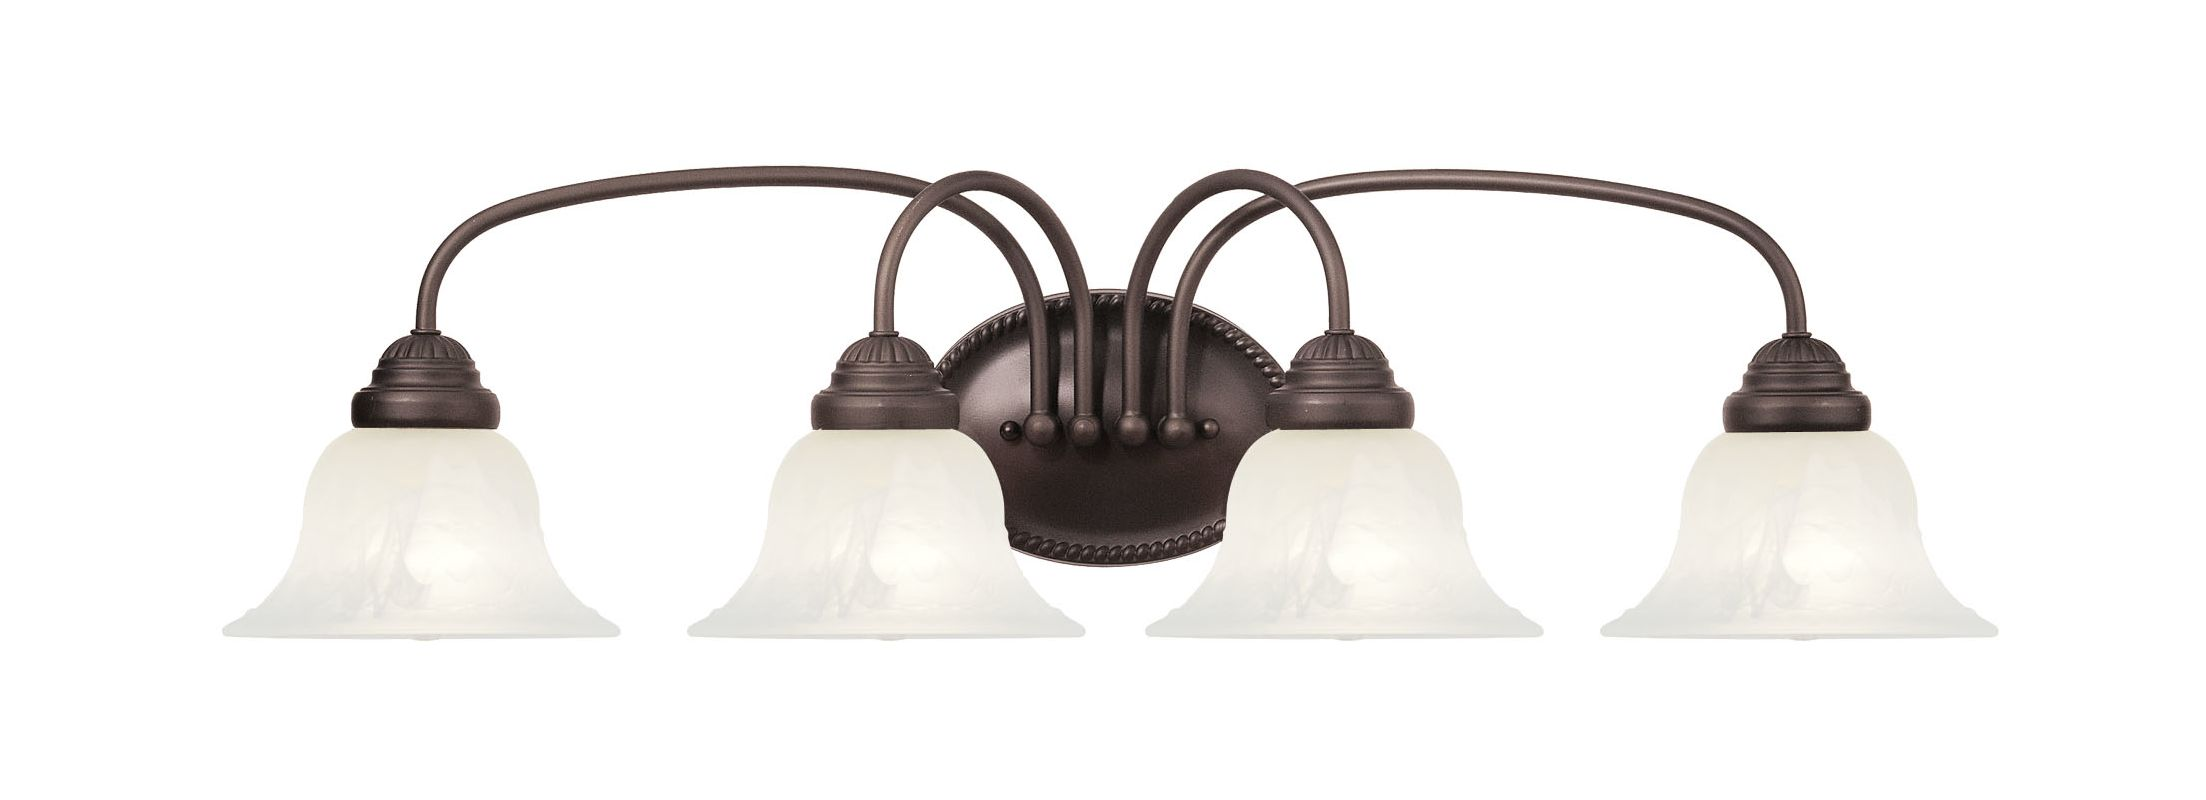 Livex Lighting 1534-07 Bronze Edgemont Bathroom Vanity Bar with 4 Lights - LightingDirect.com